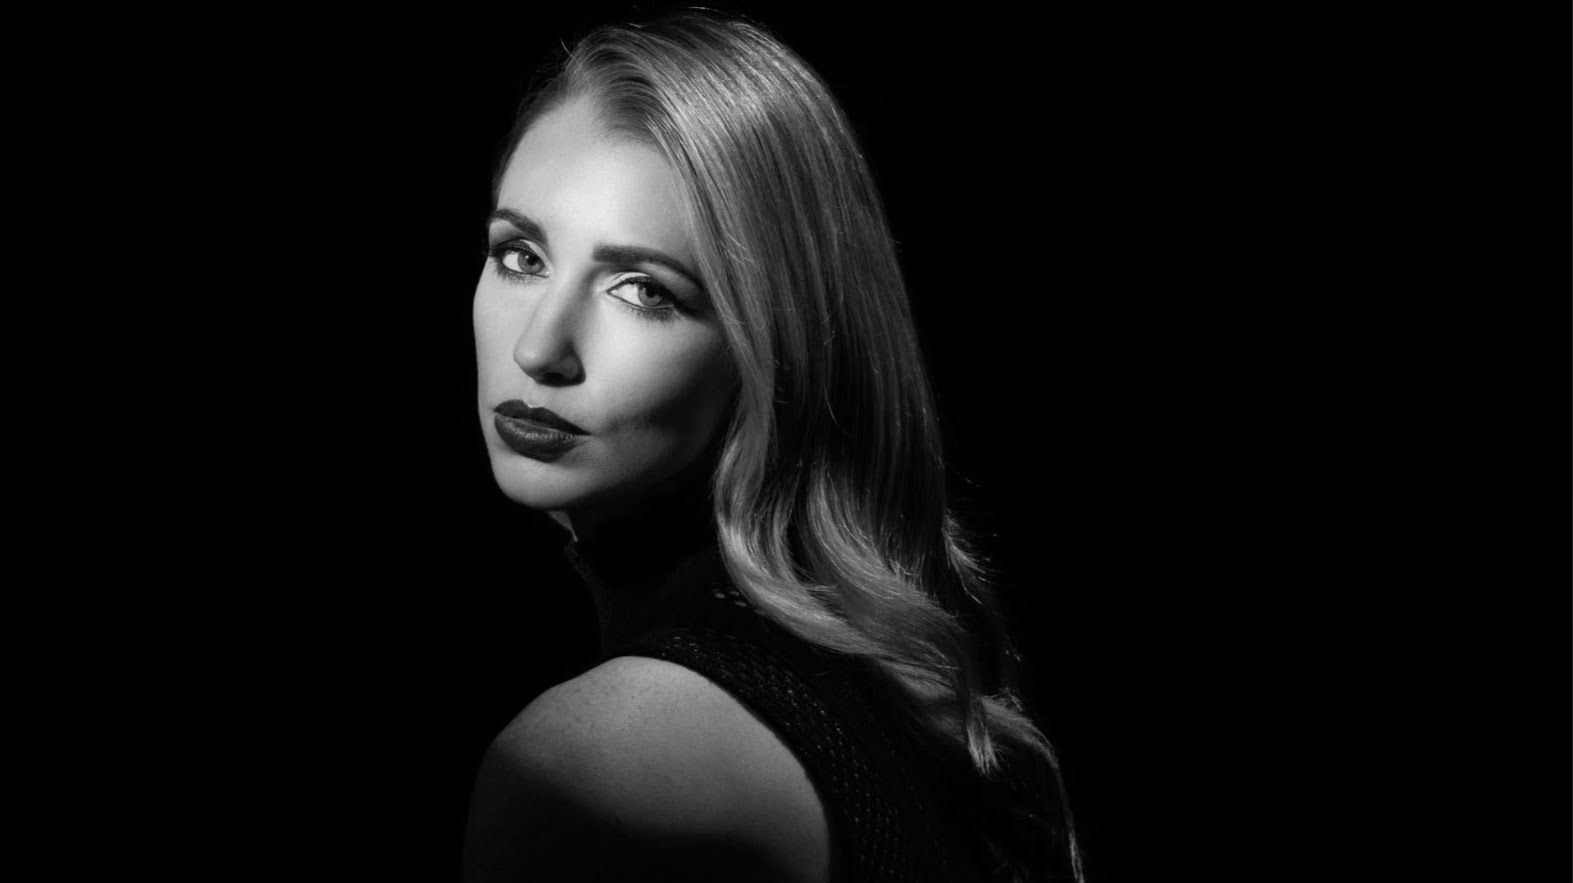 Rembrandt Lighting With Speedlight How To Shoot Low-key Film Noir Style Portrait With 2